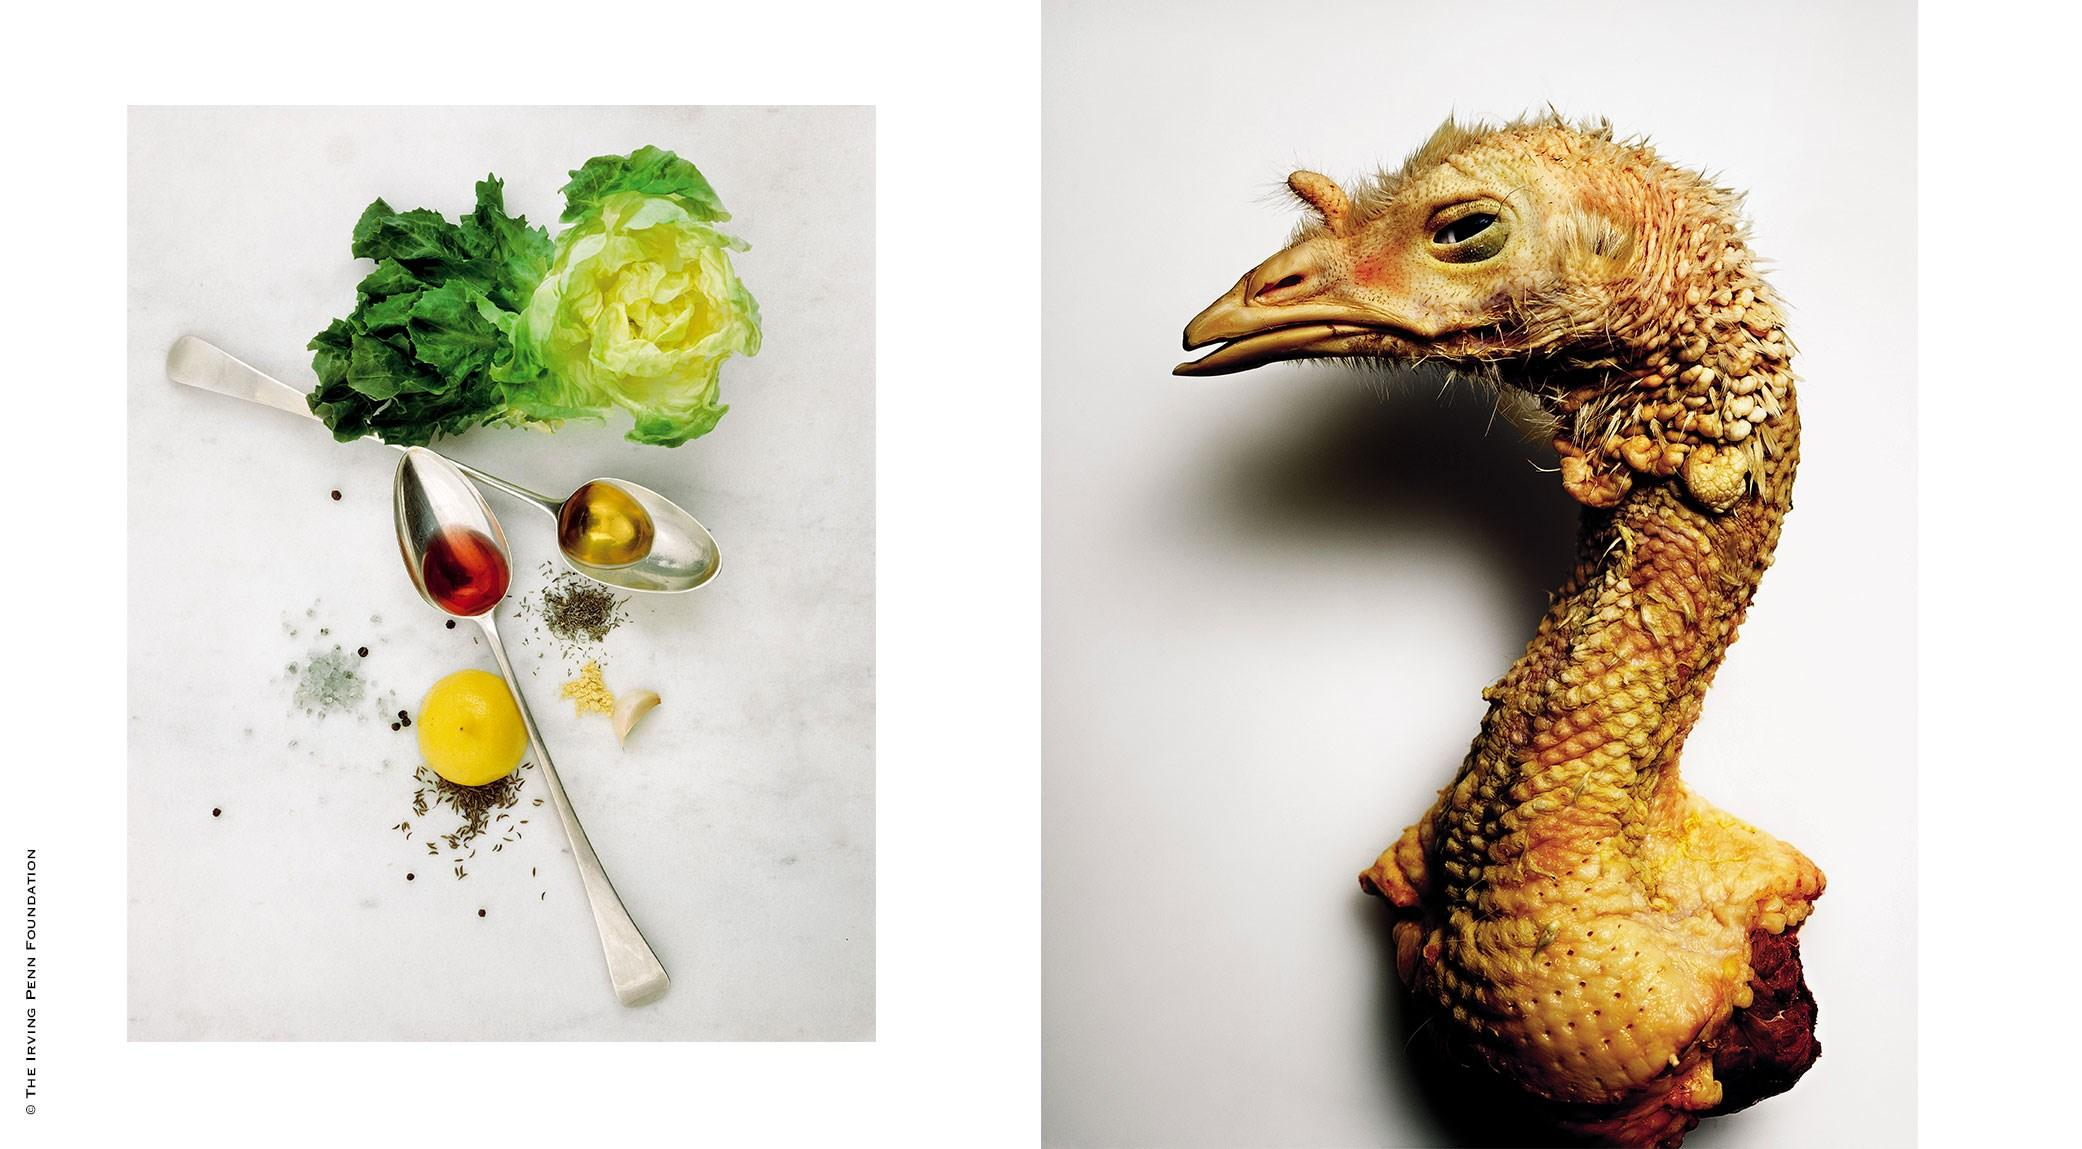 Irving Penn, Salad Ingredients | Irving Penn, Turkey Neck